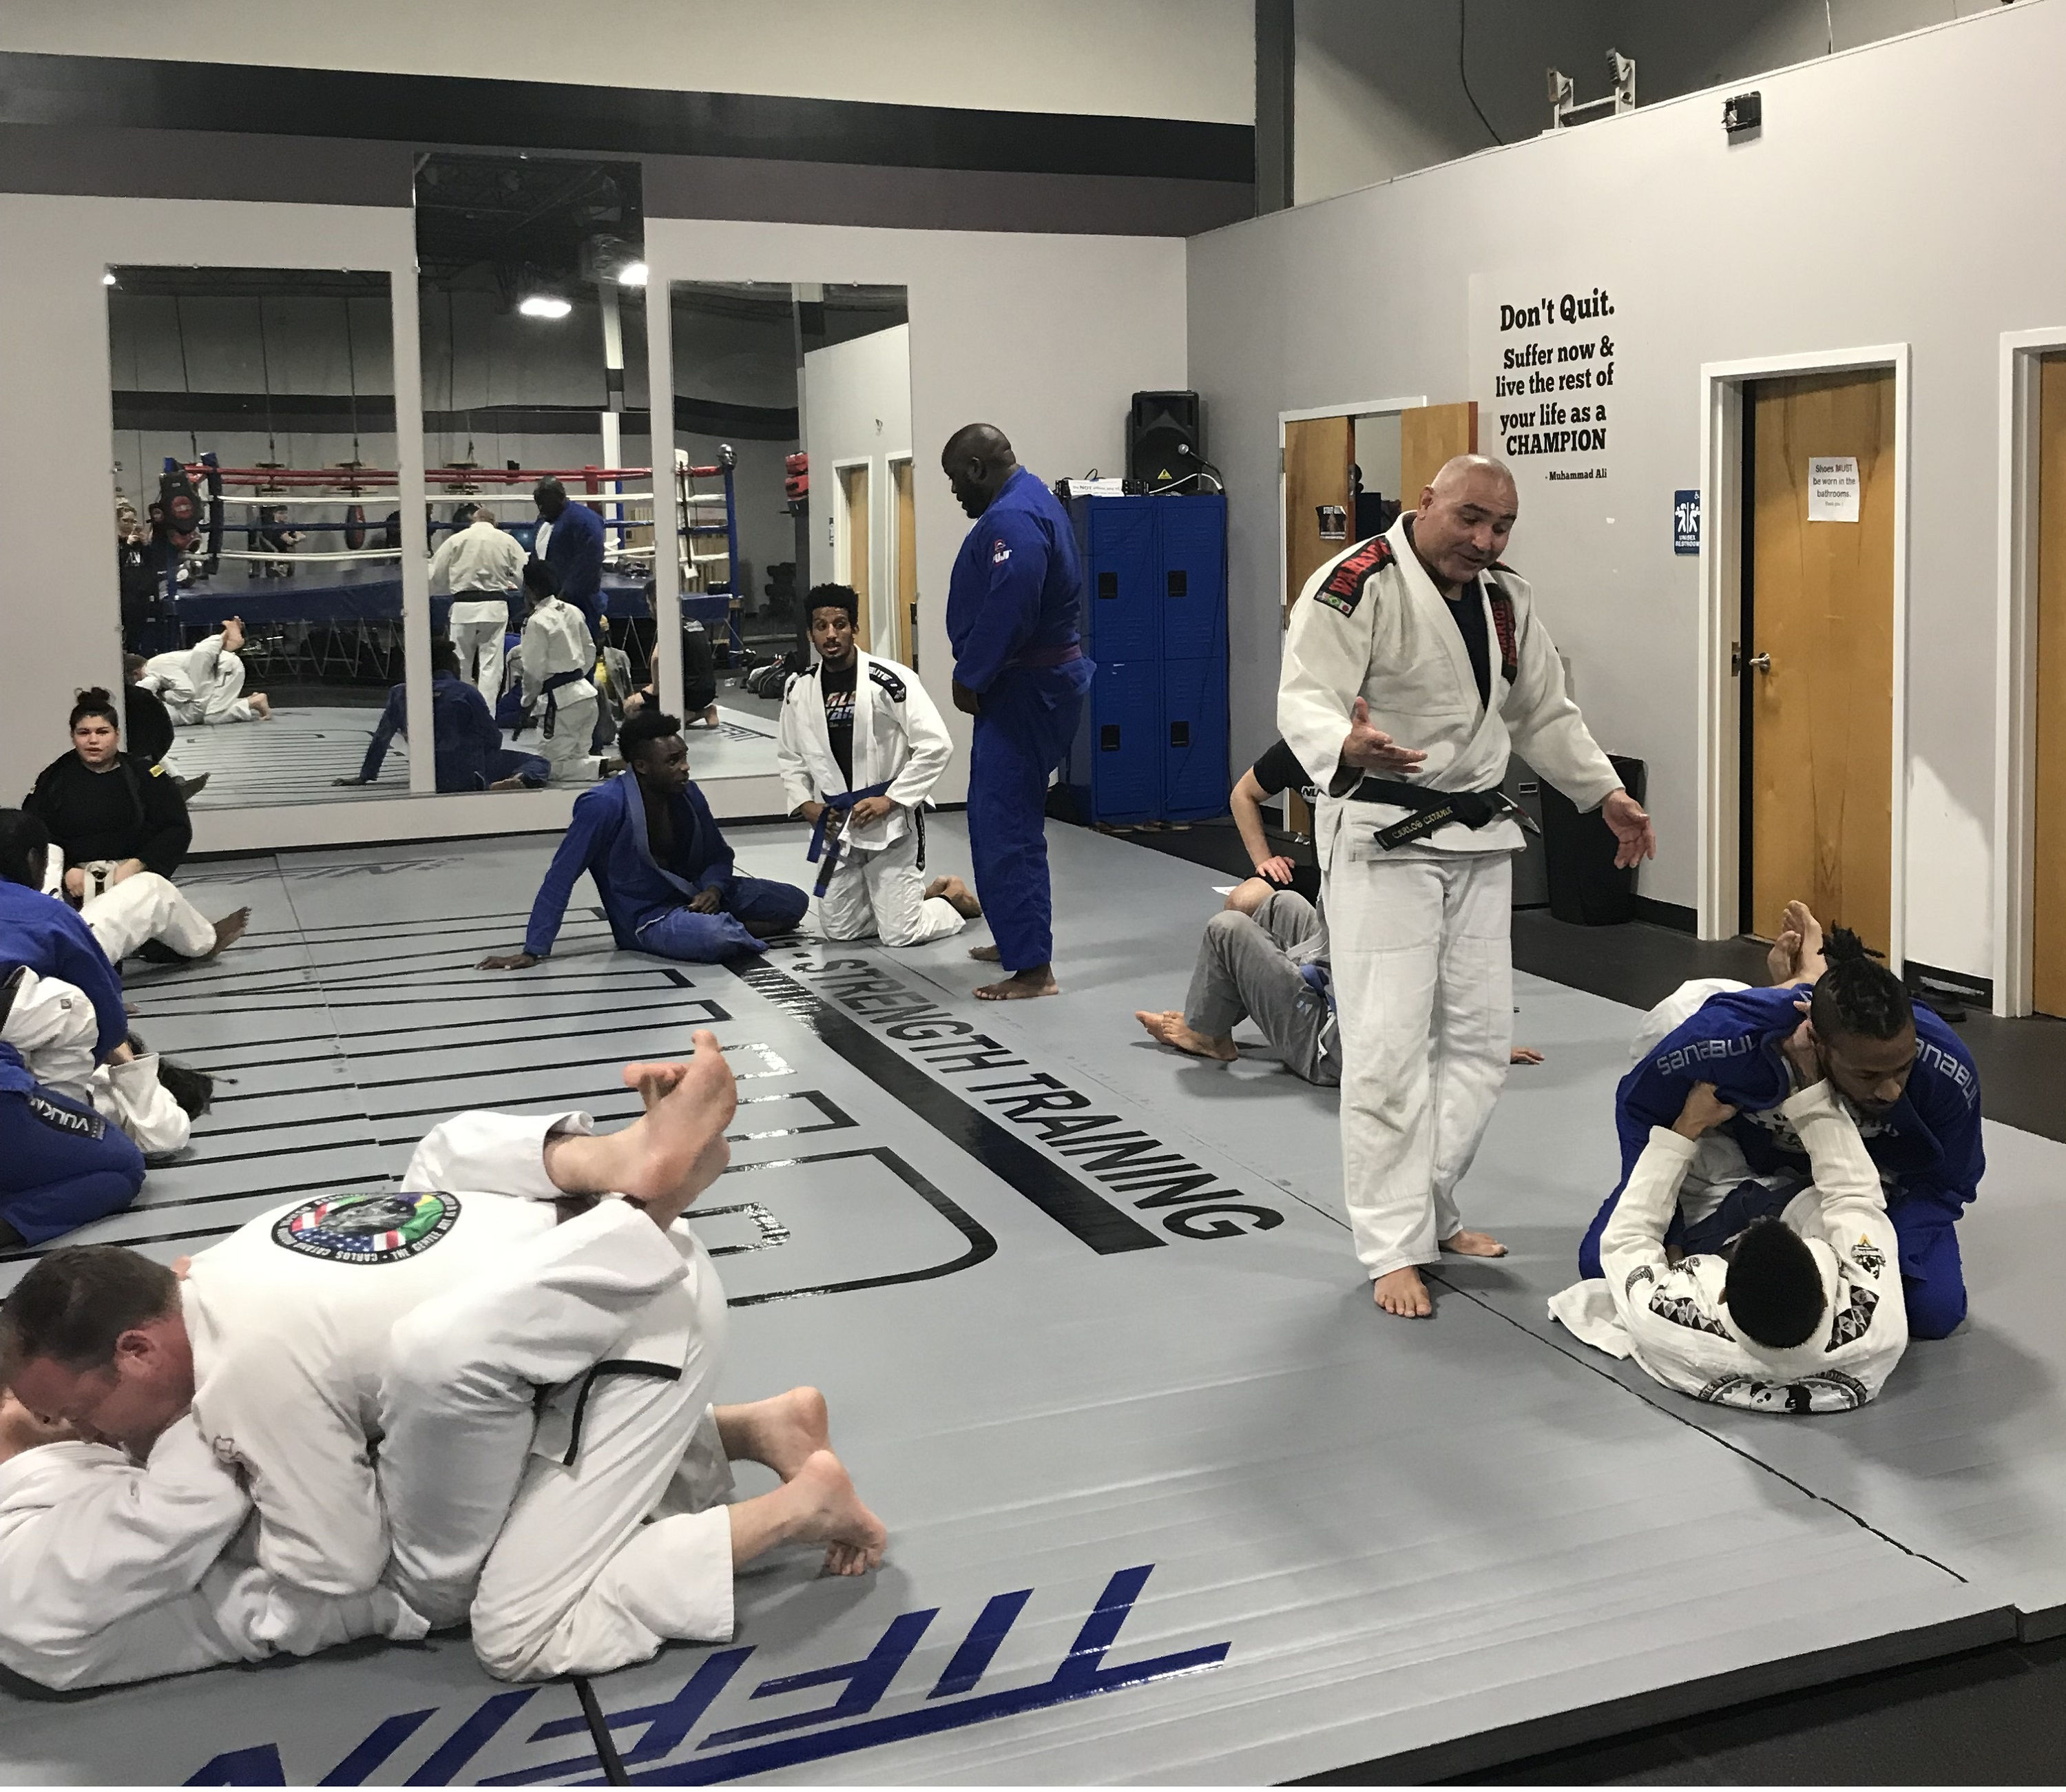 4d94e21704bb8 Brazilian Jiu-Jitsu – Level Up Training Center